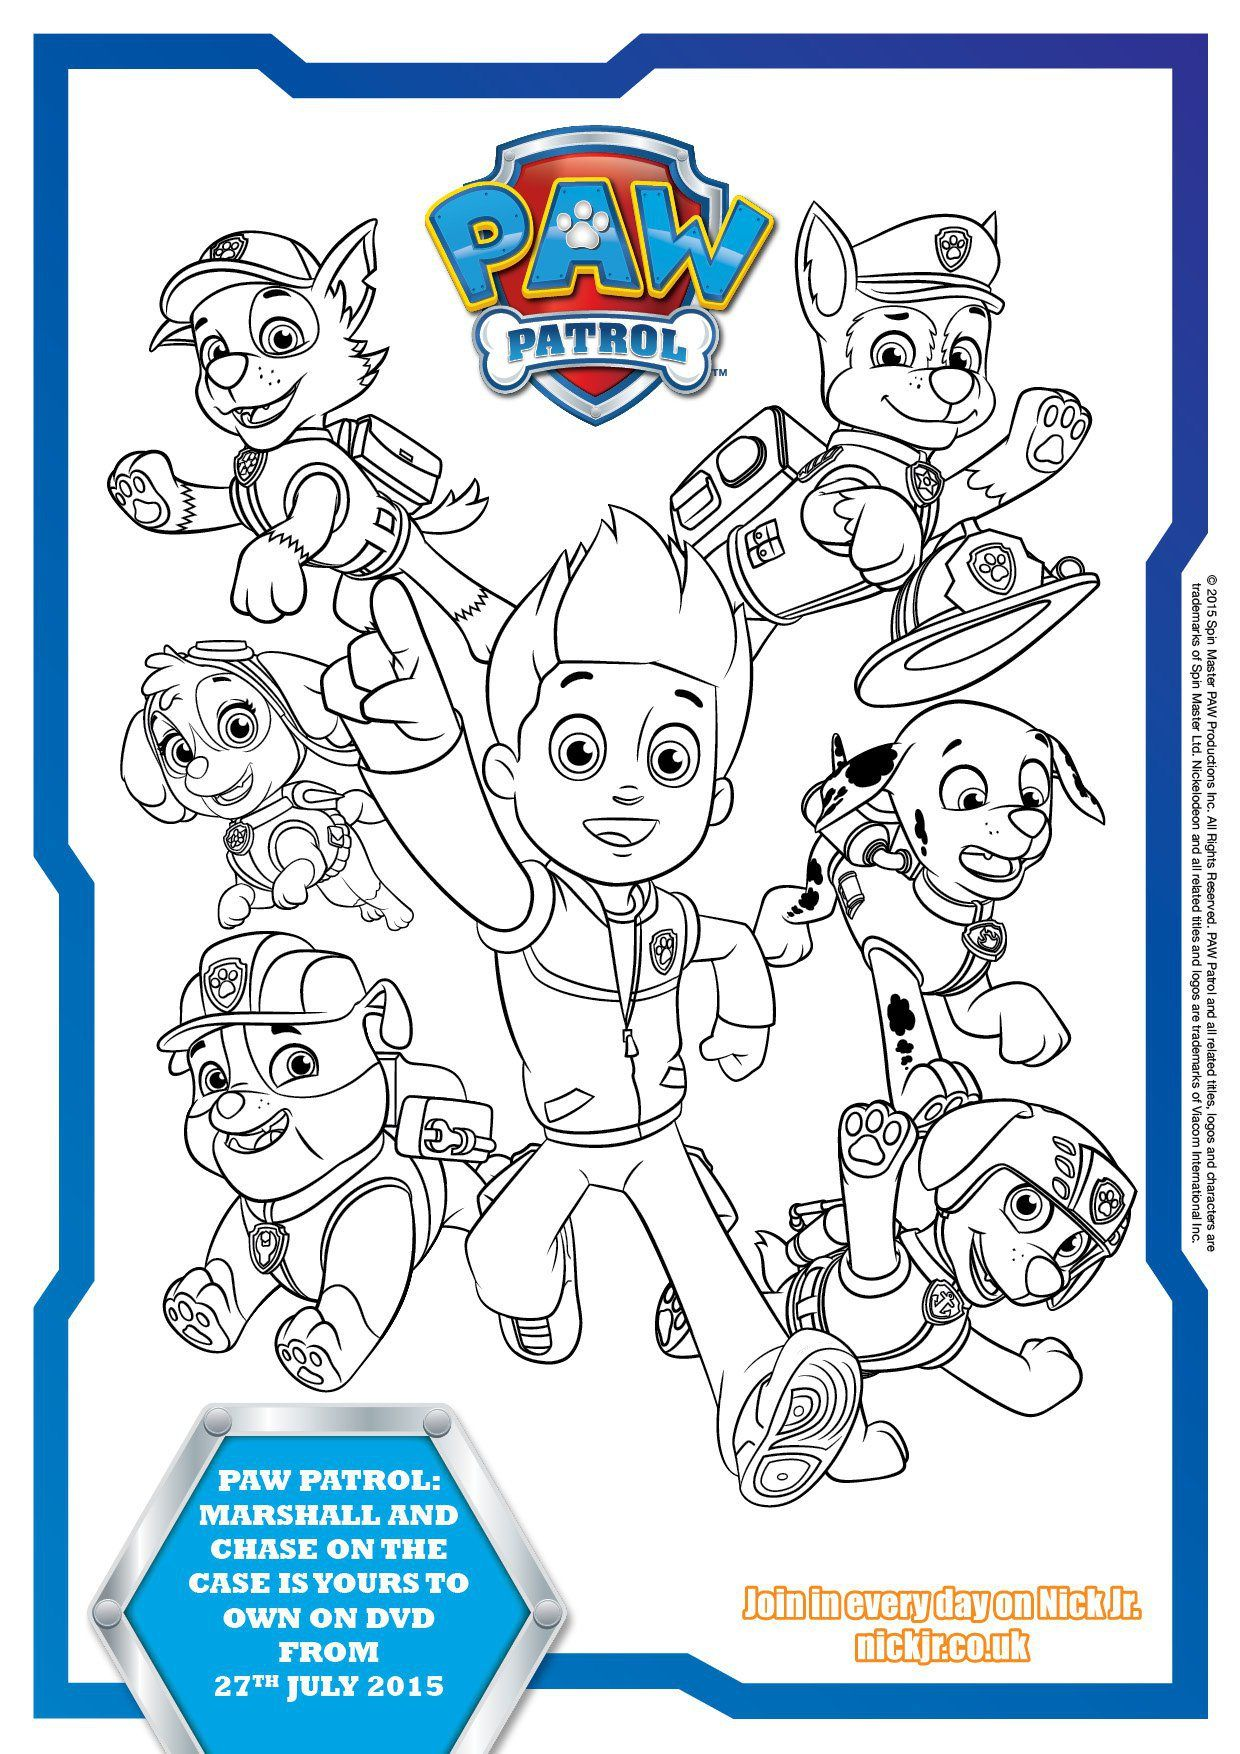 Paw patrol colouring pages free - Paw Patrol Colouring Pages And Activity Sheets